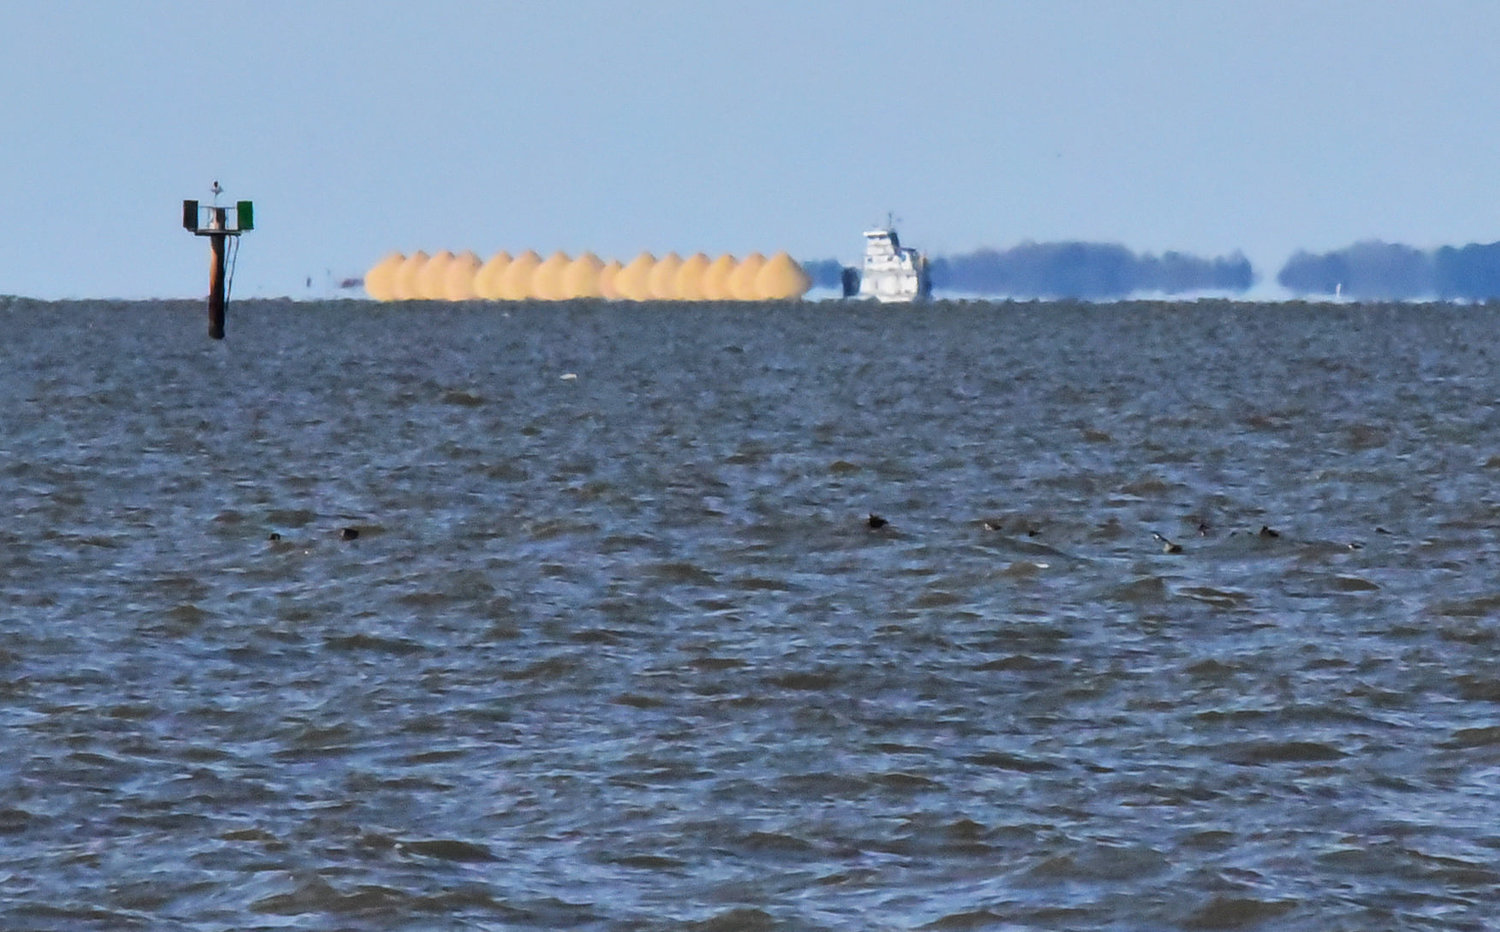 Photographer Tracy Sahler captured a barge loaded with fill soil on the horizon of Tangier Sound.